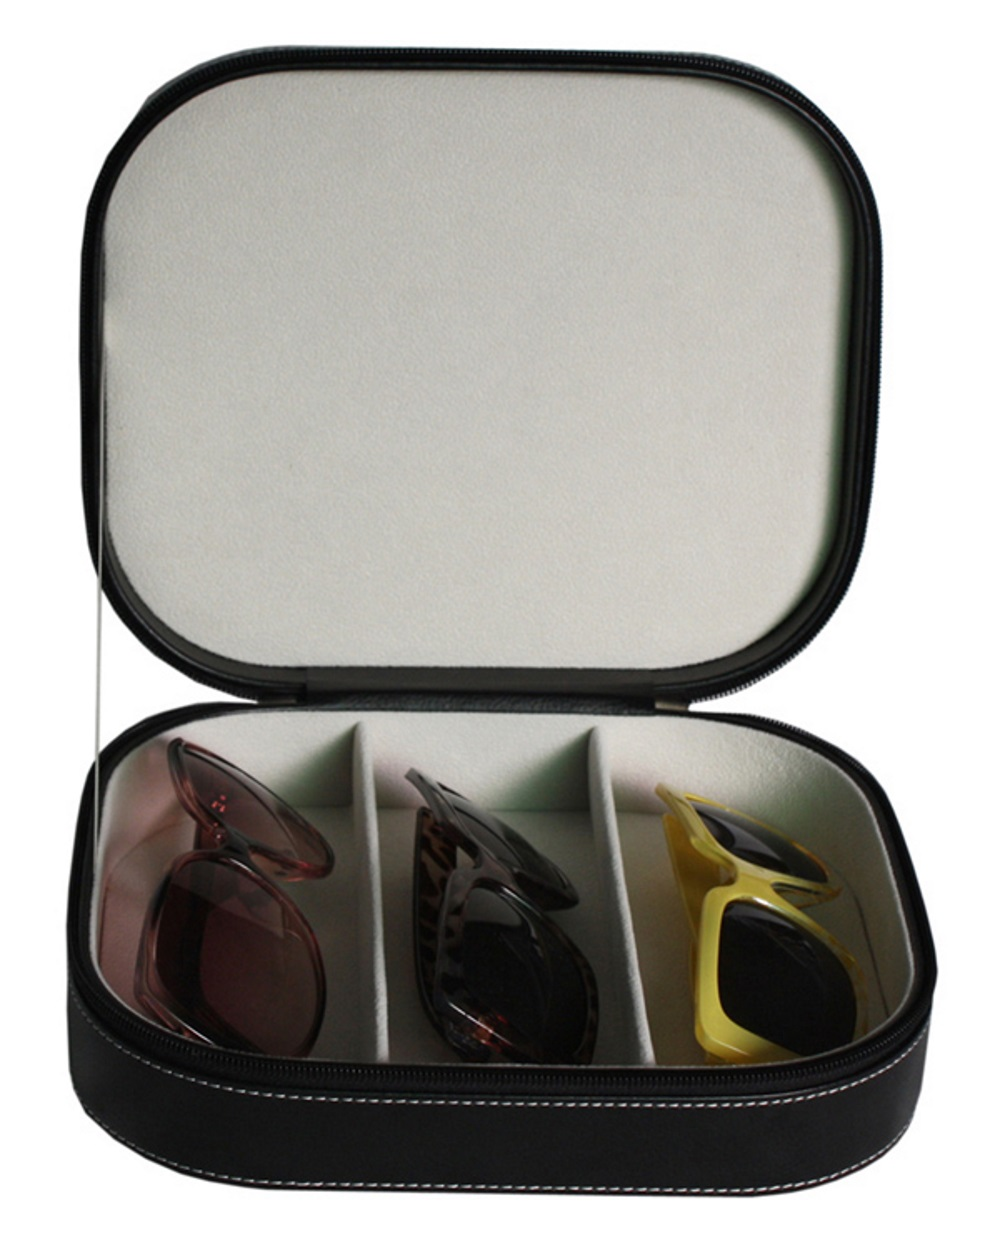 TIMELYBUYS 3 Piece Extra Large Travel Eyeglass Sunglass Glasses Zippered Case Storage Organizer Collector Box at Sears.com